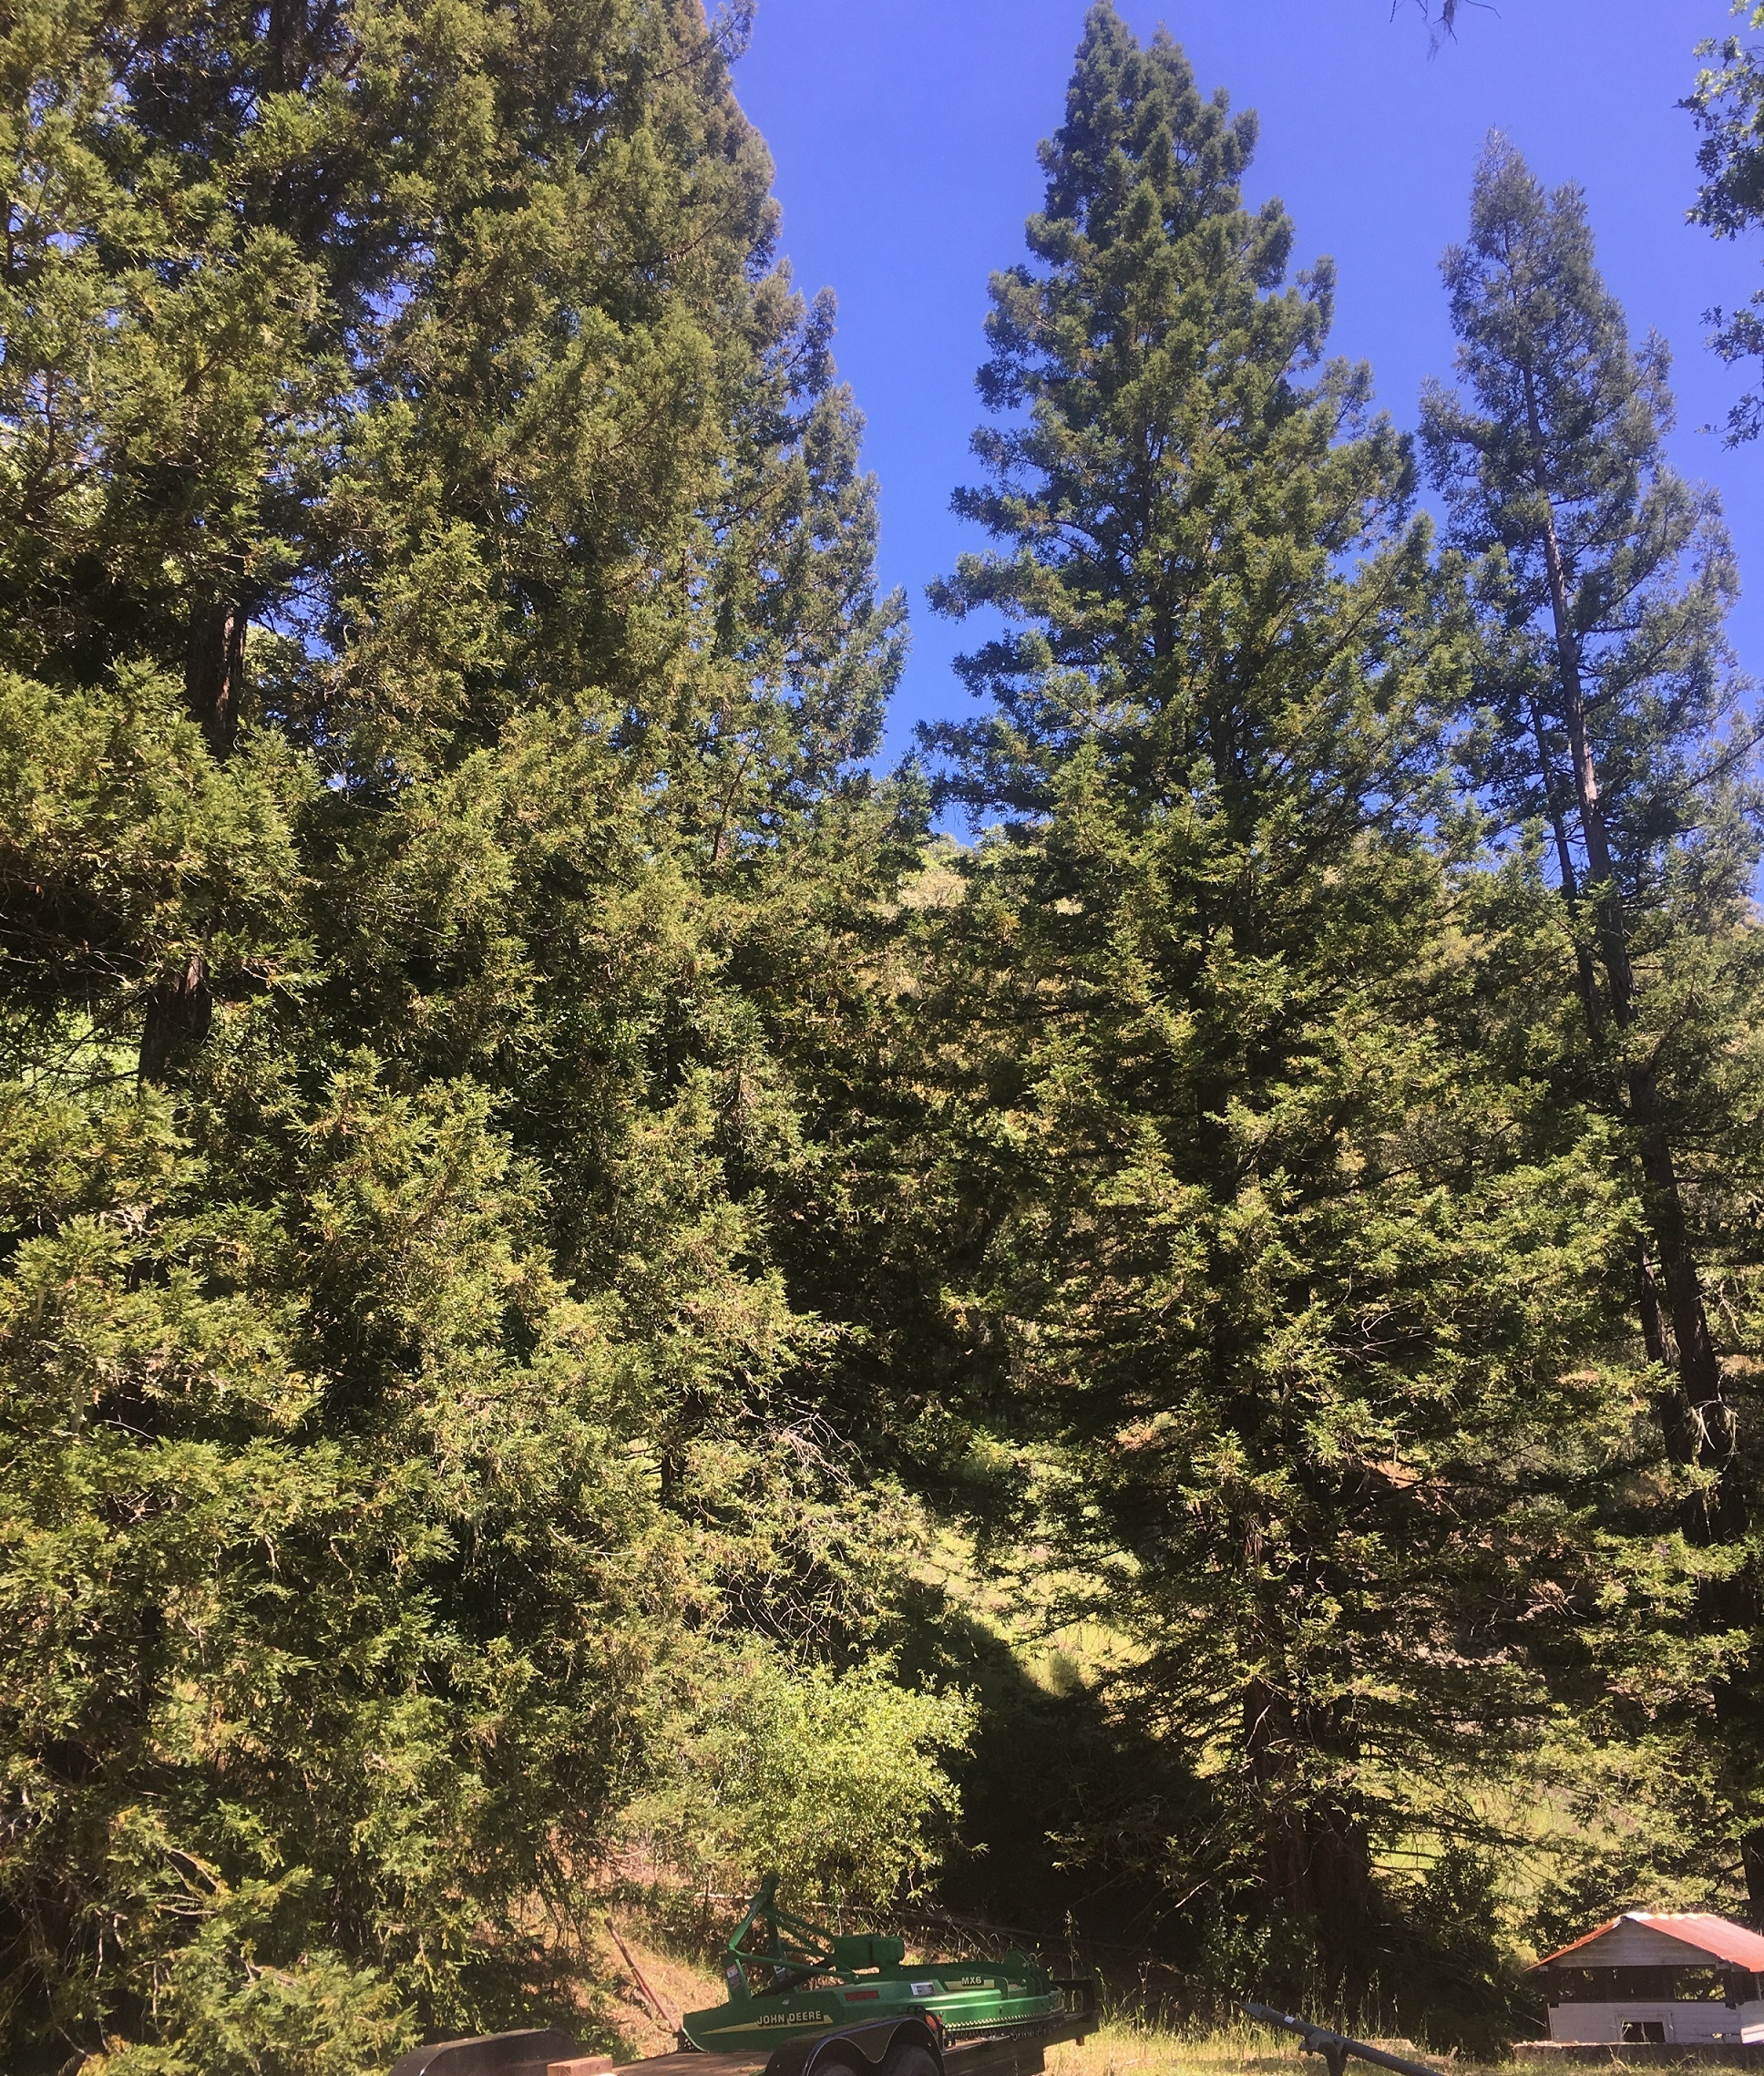 40 acres of trees and meadows with a small cabin near Yorkville in Mendocino county.